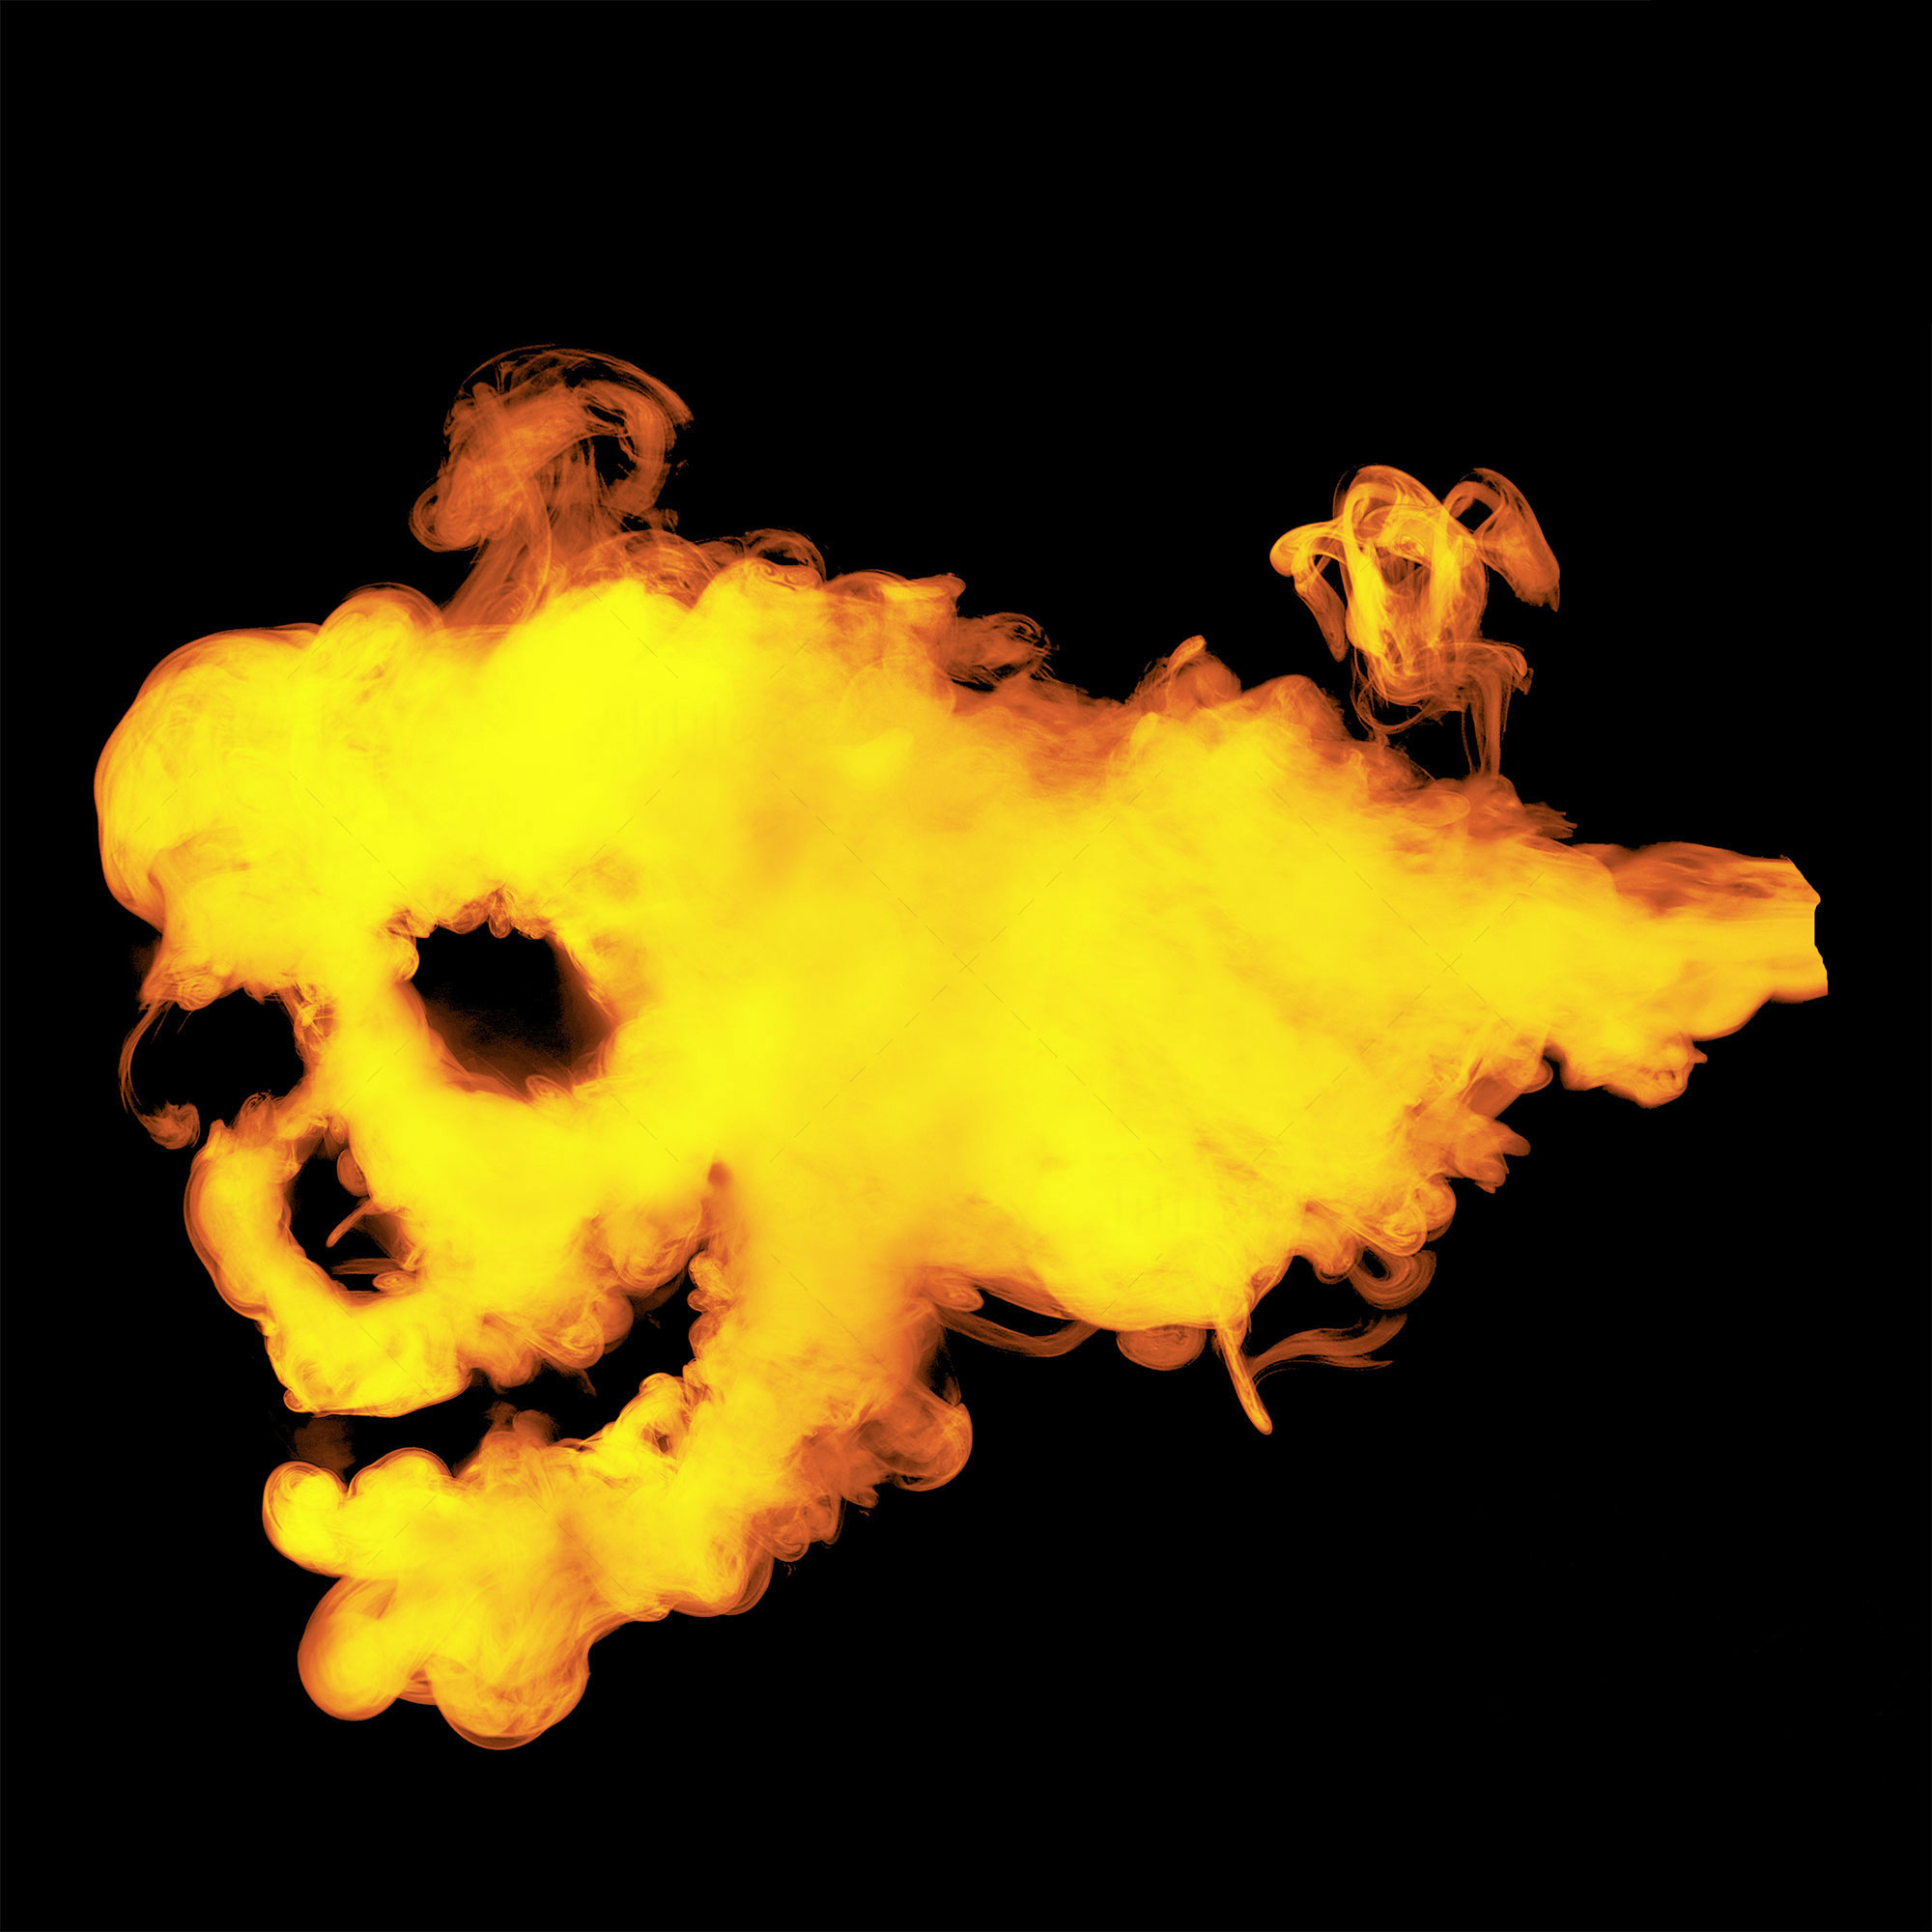 Fire Smoke Skull Transparent png